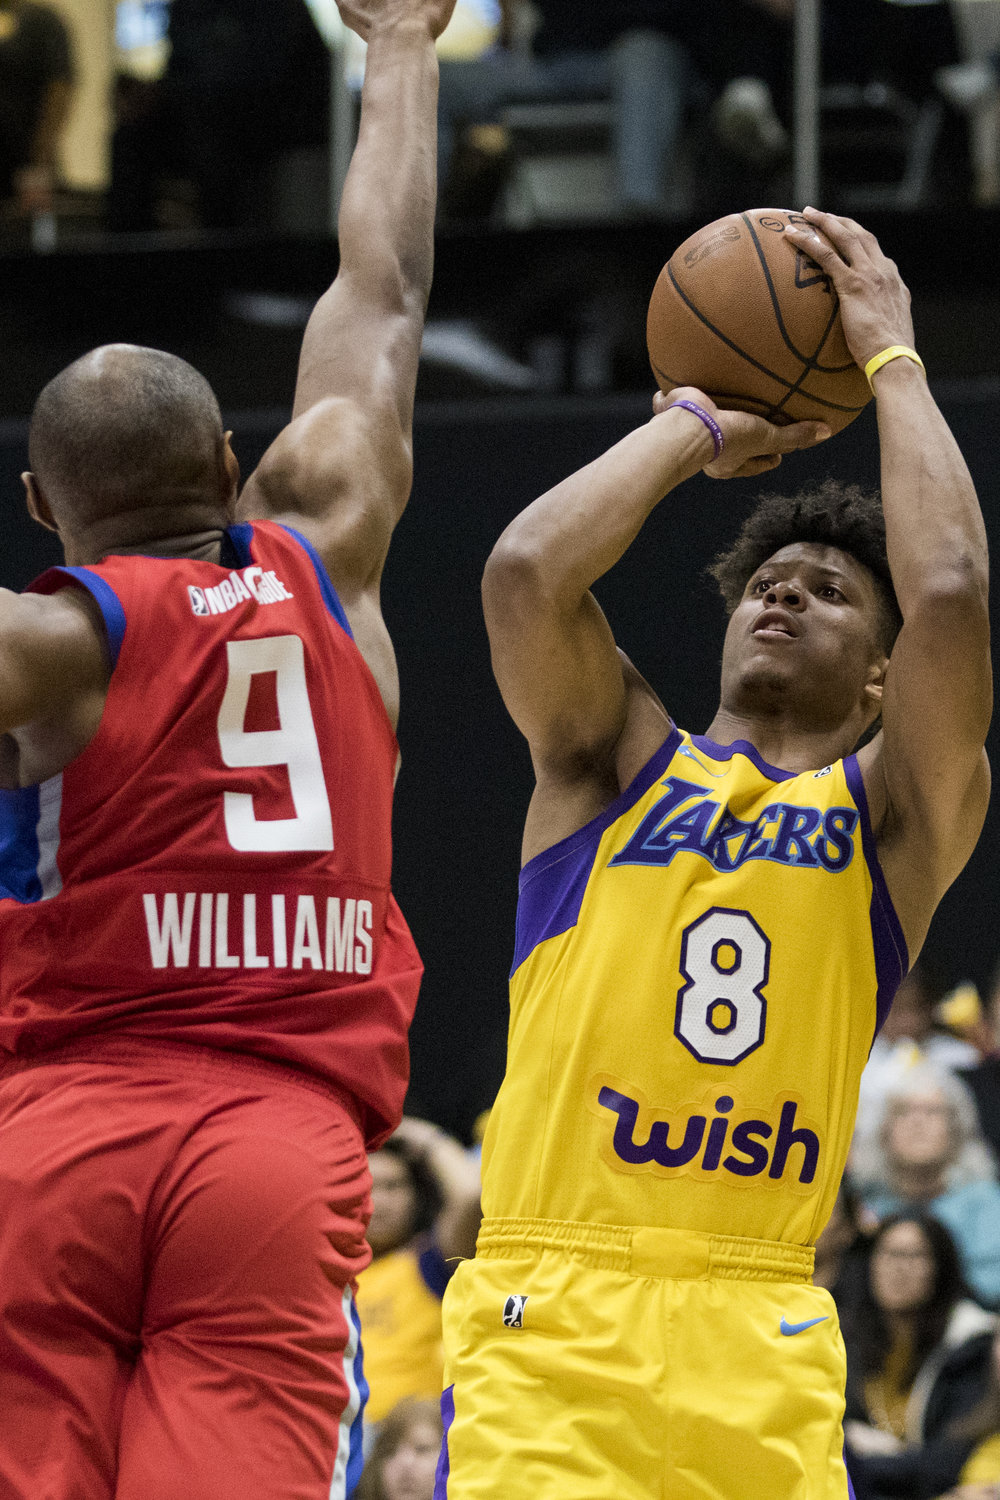 South Bay Lakers guard Scott Machado (8, right) attempts a jump shot while Agua Caliente Clippers forward C.J. Williams attempts to block the shot during their Gatorade League game on March 16, 2017 at the UCLA Health Stadium in El Segundo,California. The Lakers won 108-104. (Zane Meyer-Thornton/Corsair Photo)